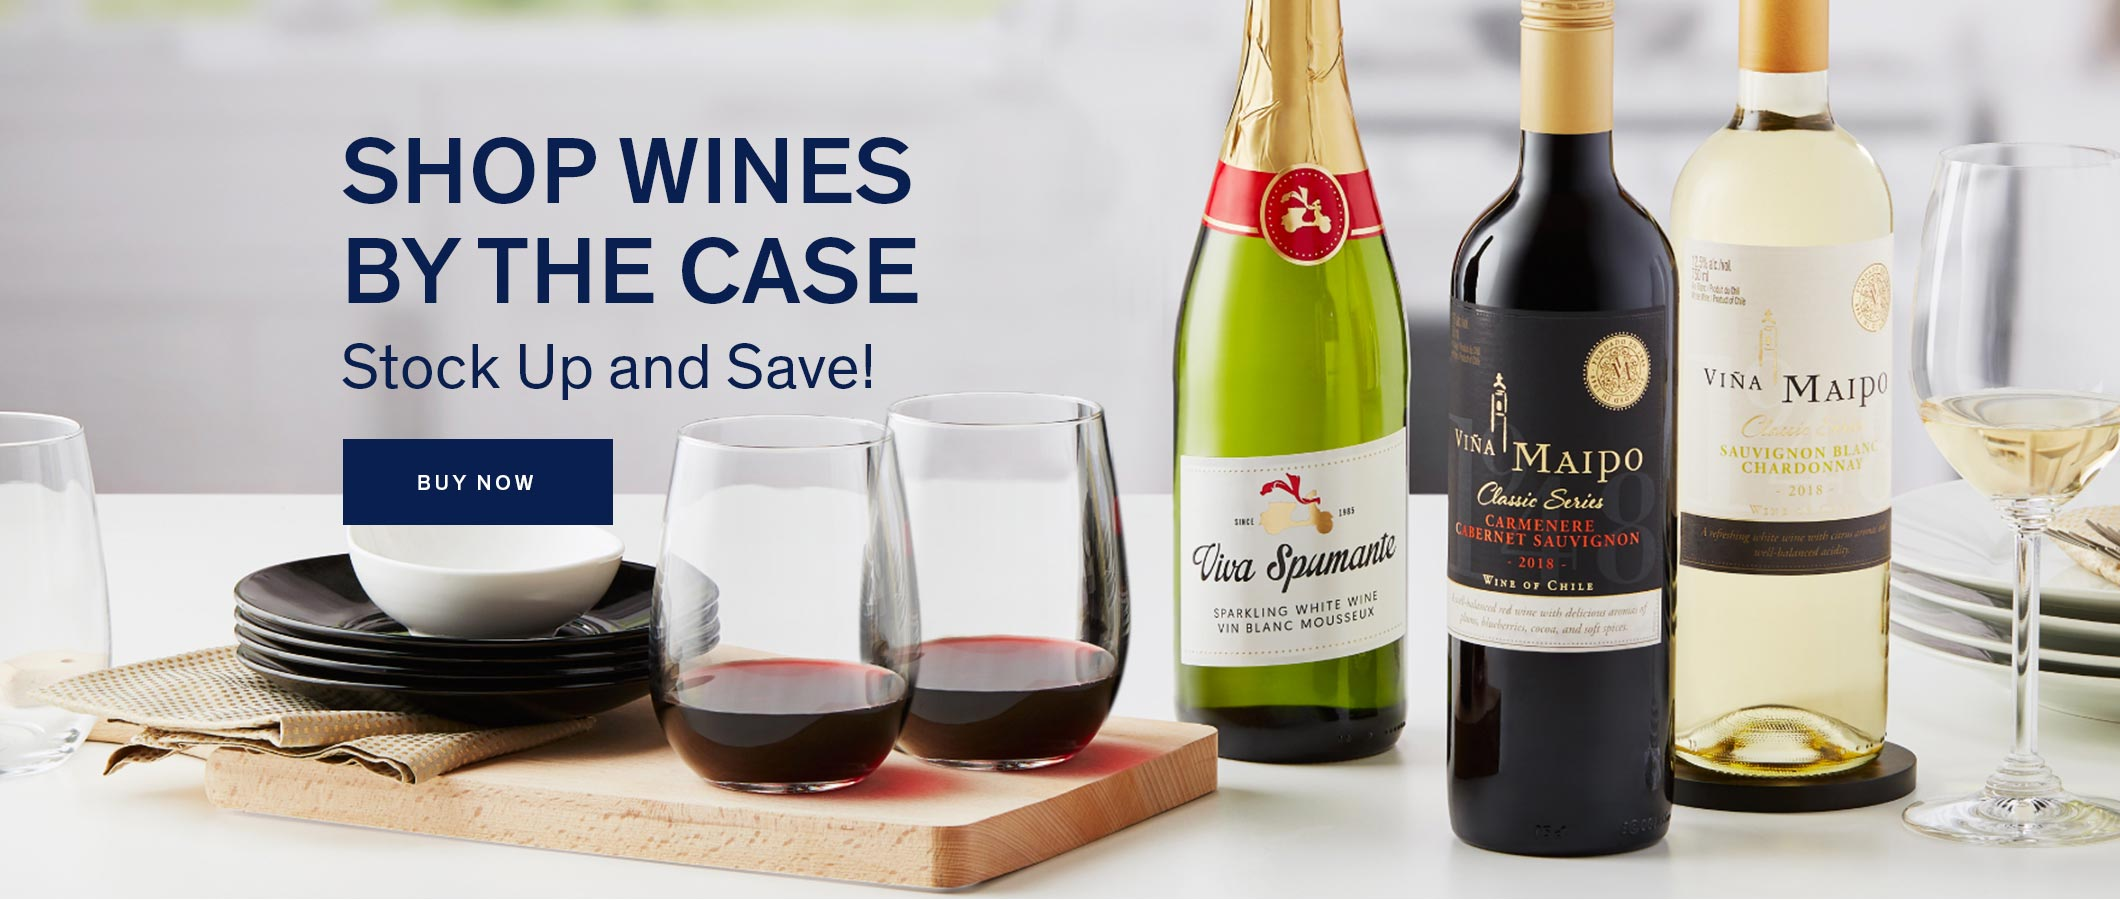 Shop Wines by the Case